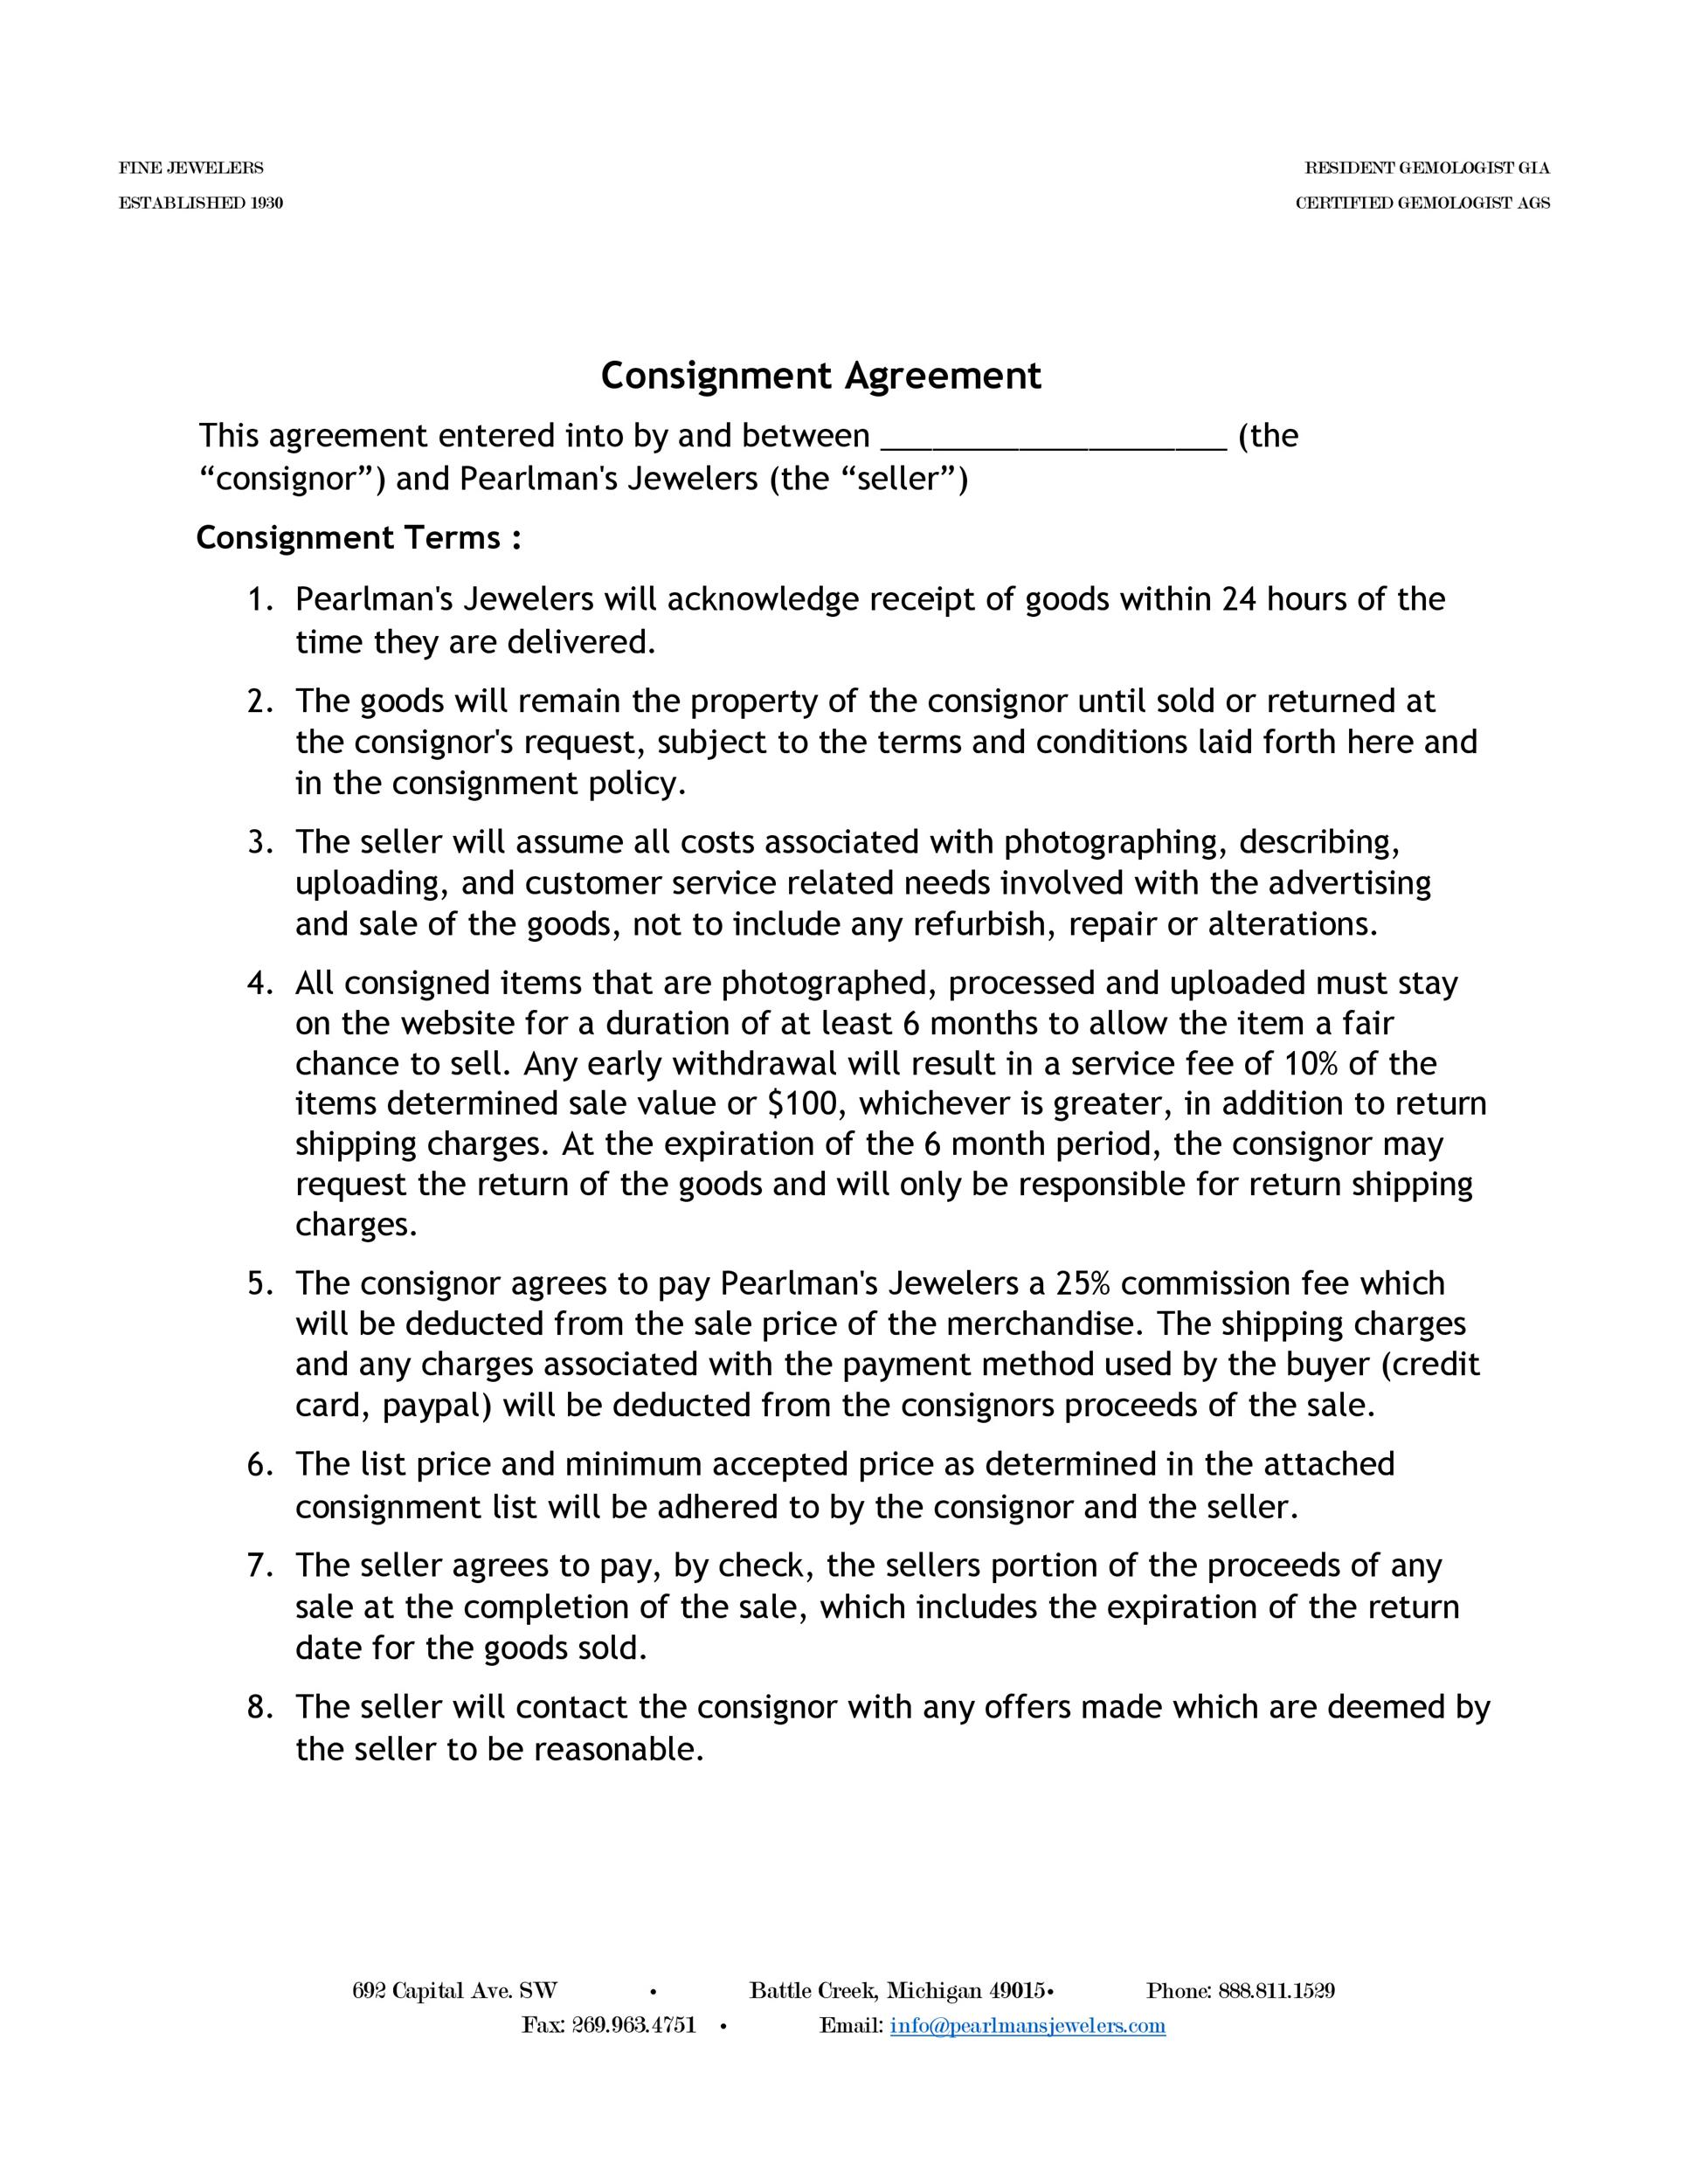 Free Consignment Agreement Template 41  Free Consignment Agreement